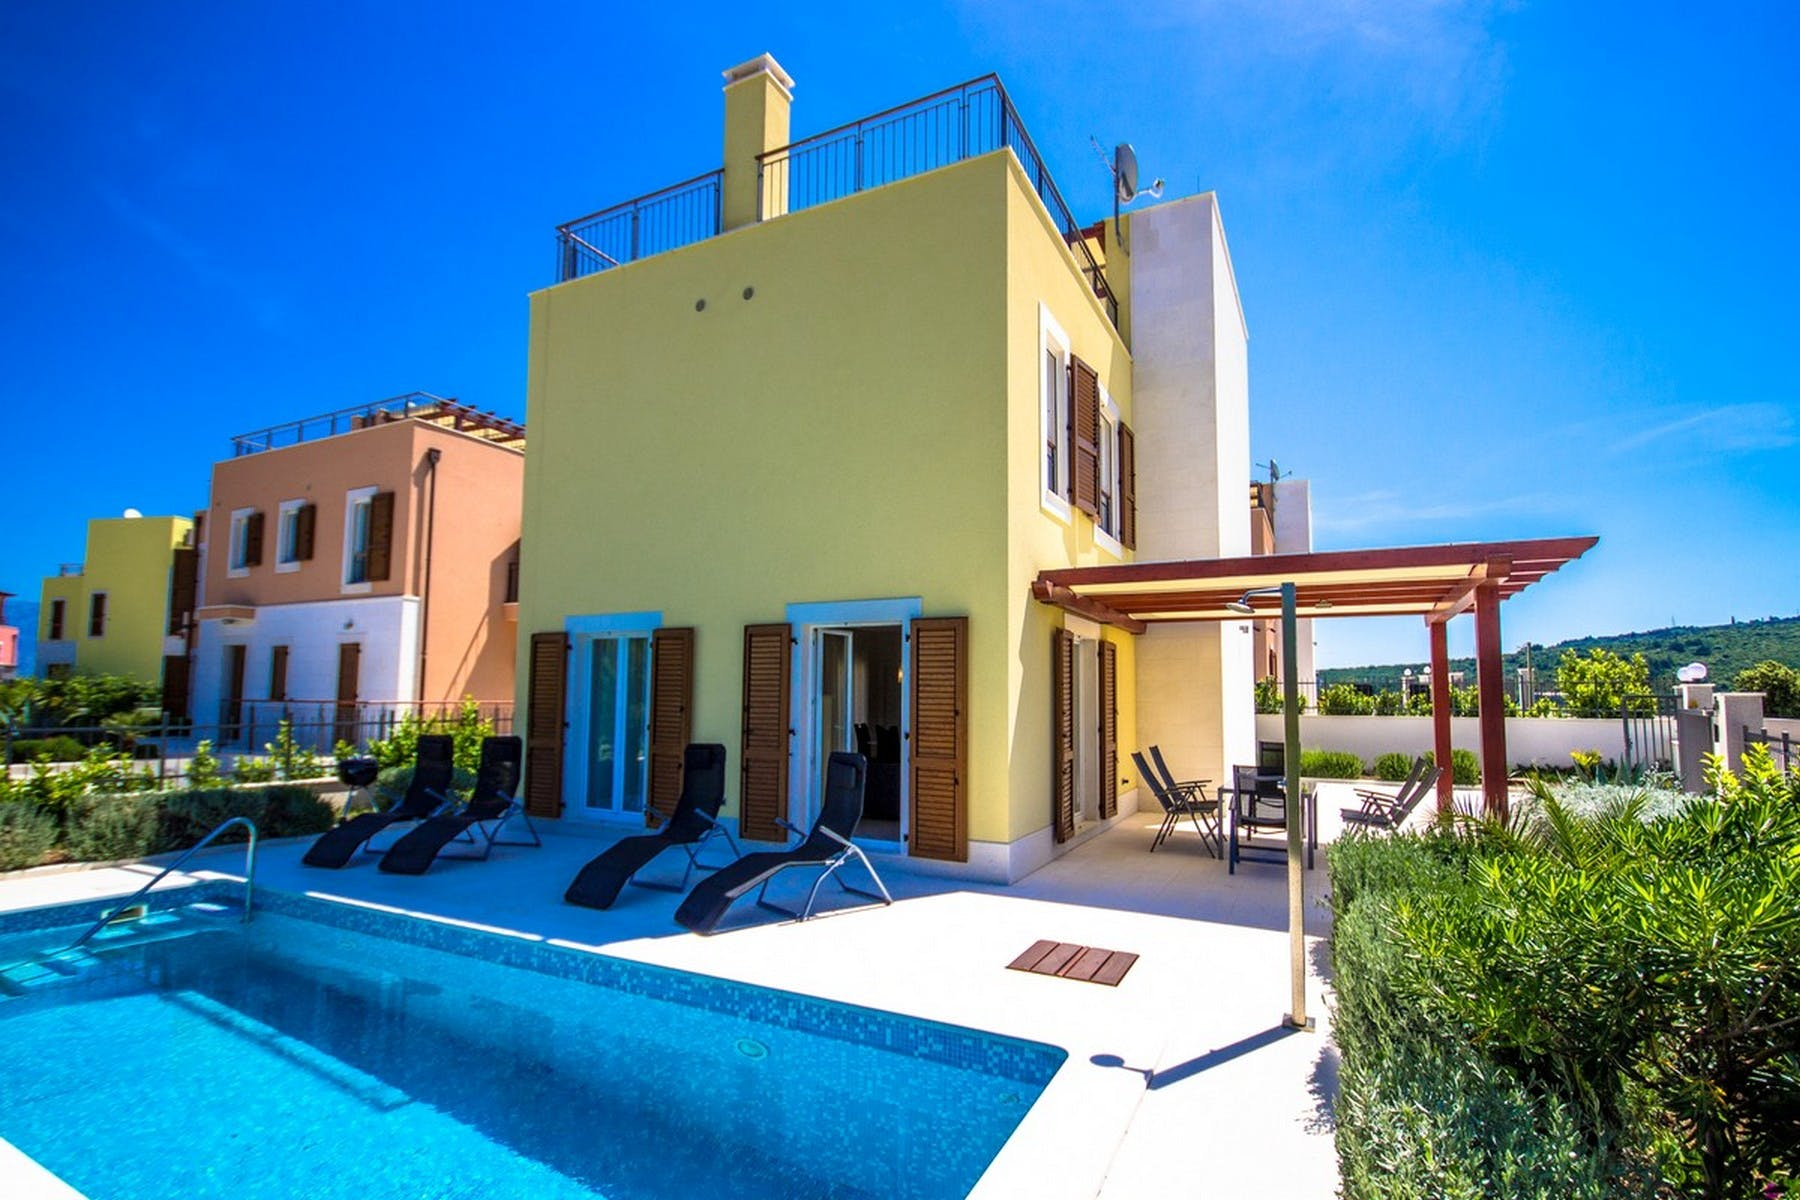 Full view of the villa with a pool